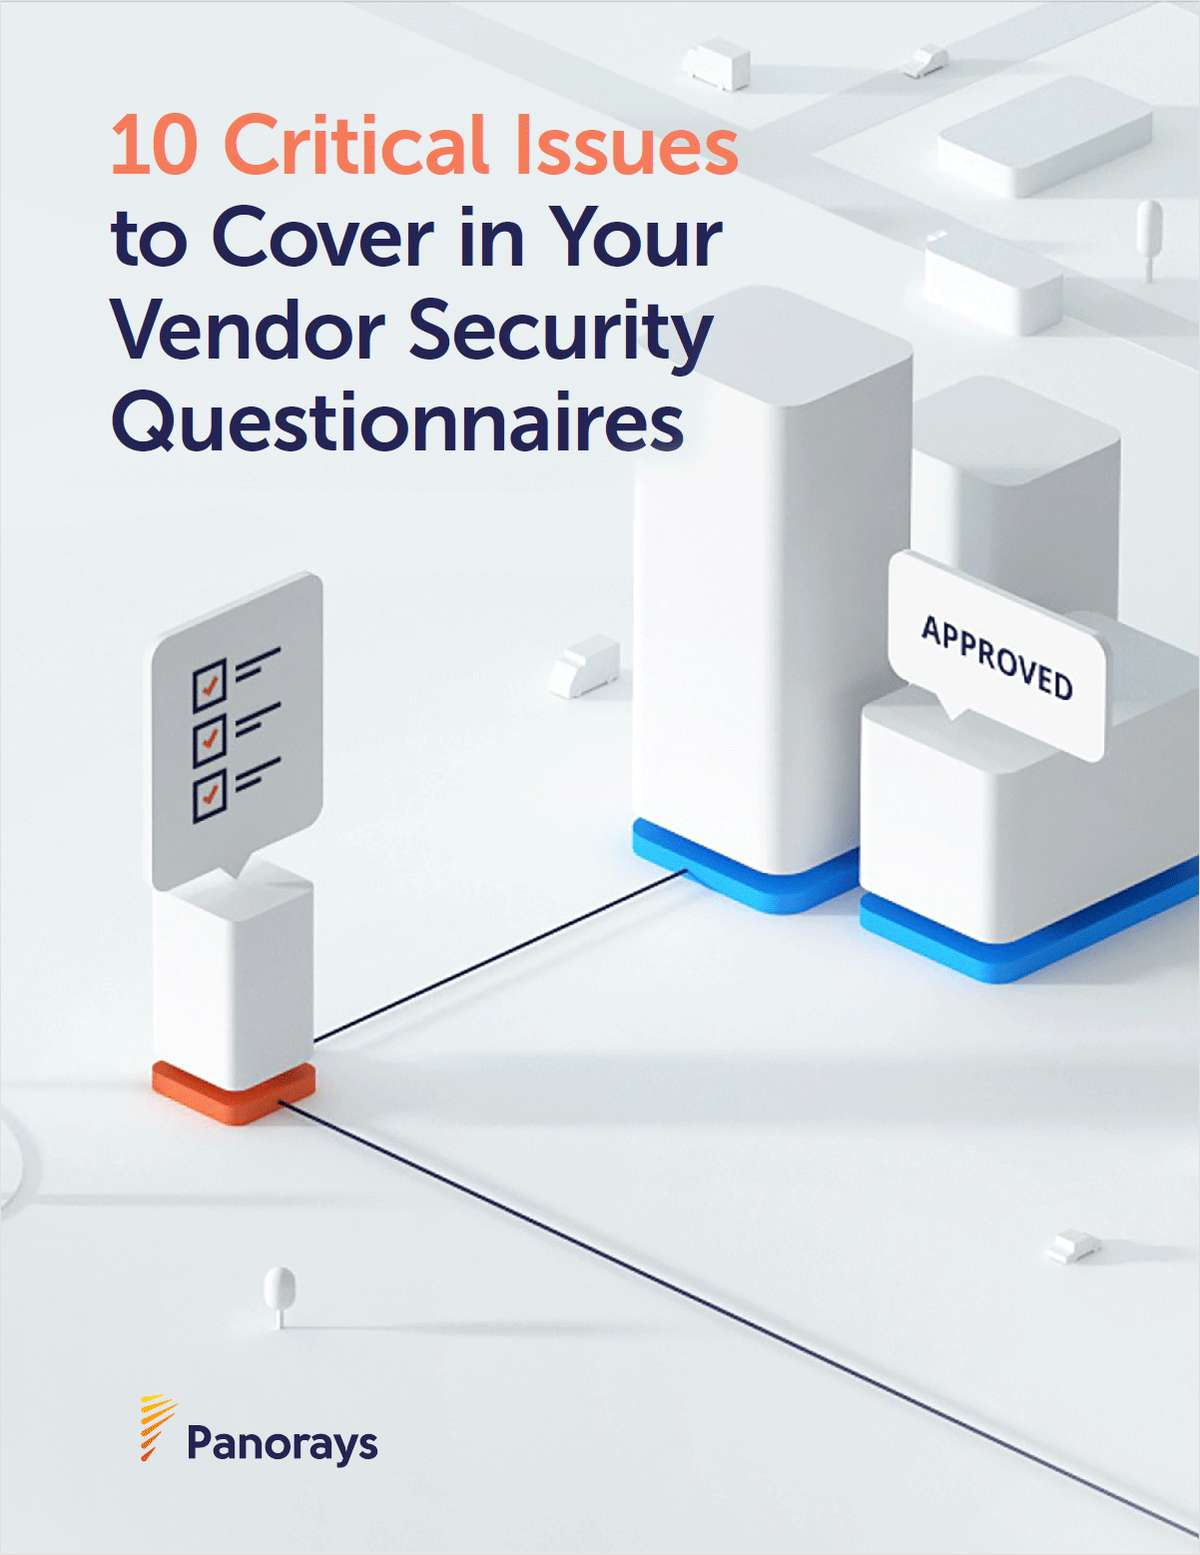 10 Critical Issues to Cover in Your Vendor Security Questionnaires